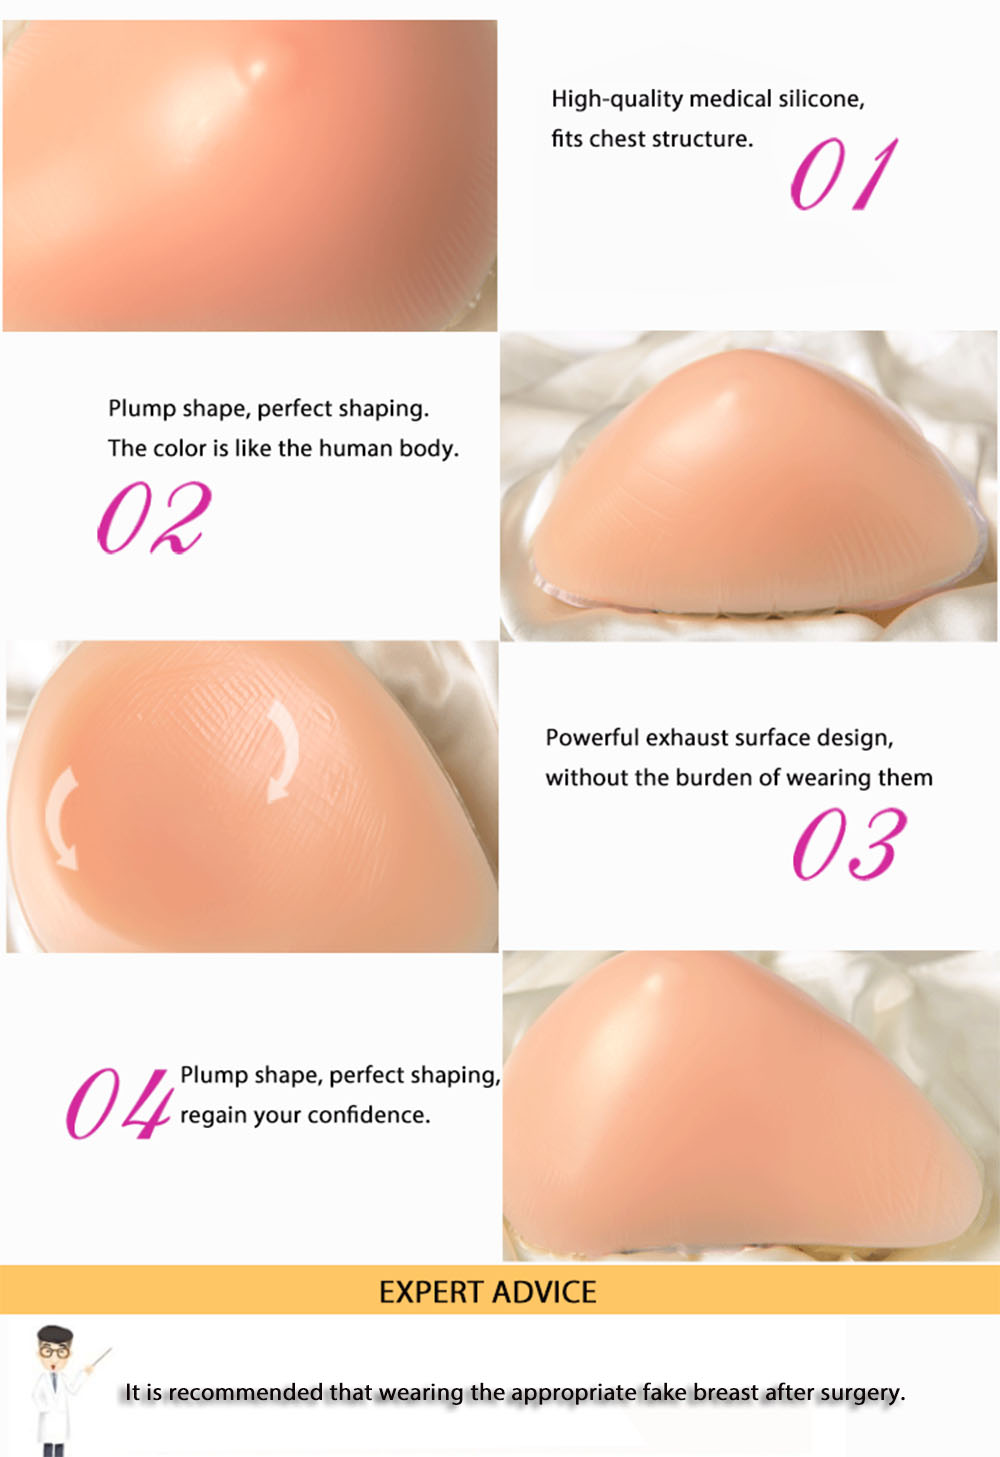 1pcs Left Helical Medical Silicone Implanted Breasts Fake Chest Postoperative Recovery Type